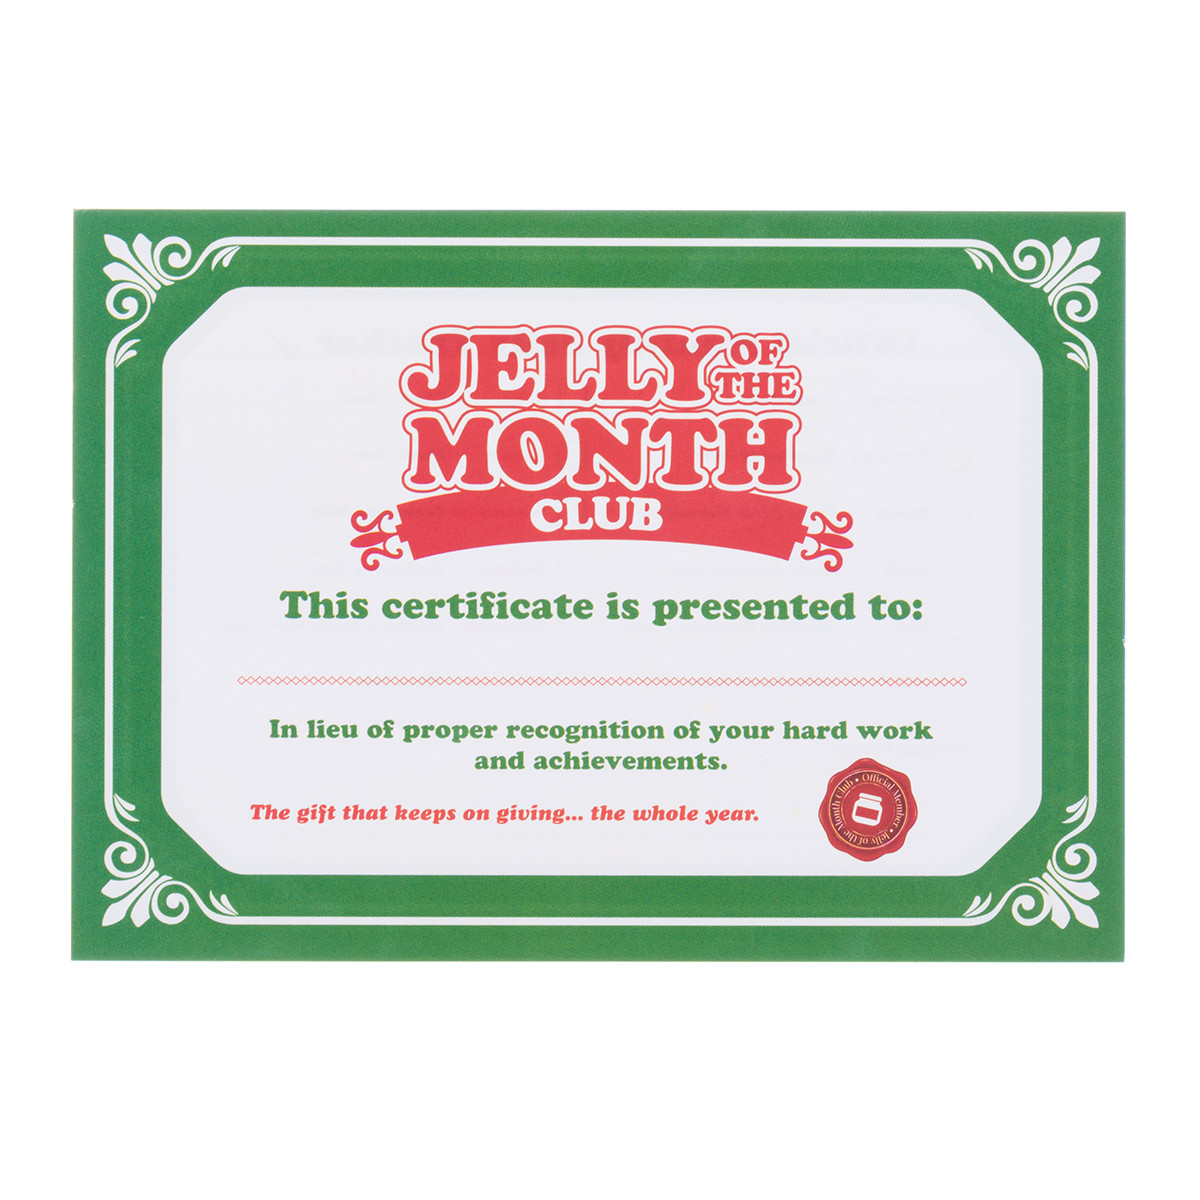 Jelly Of The Month Club Christmas Vacation Certificate Superbo